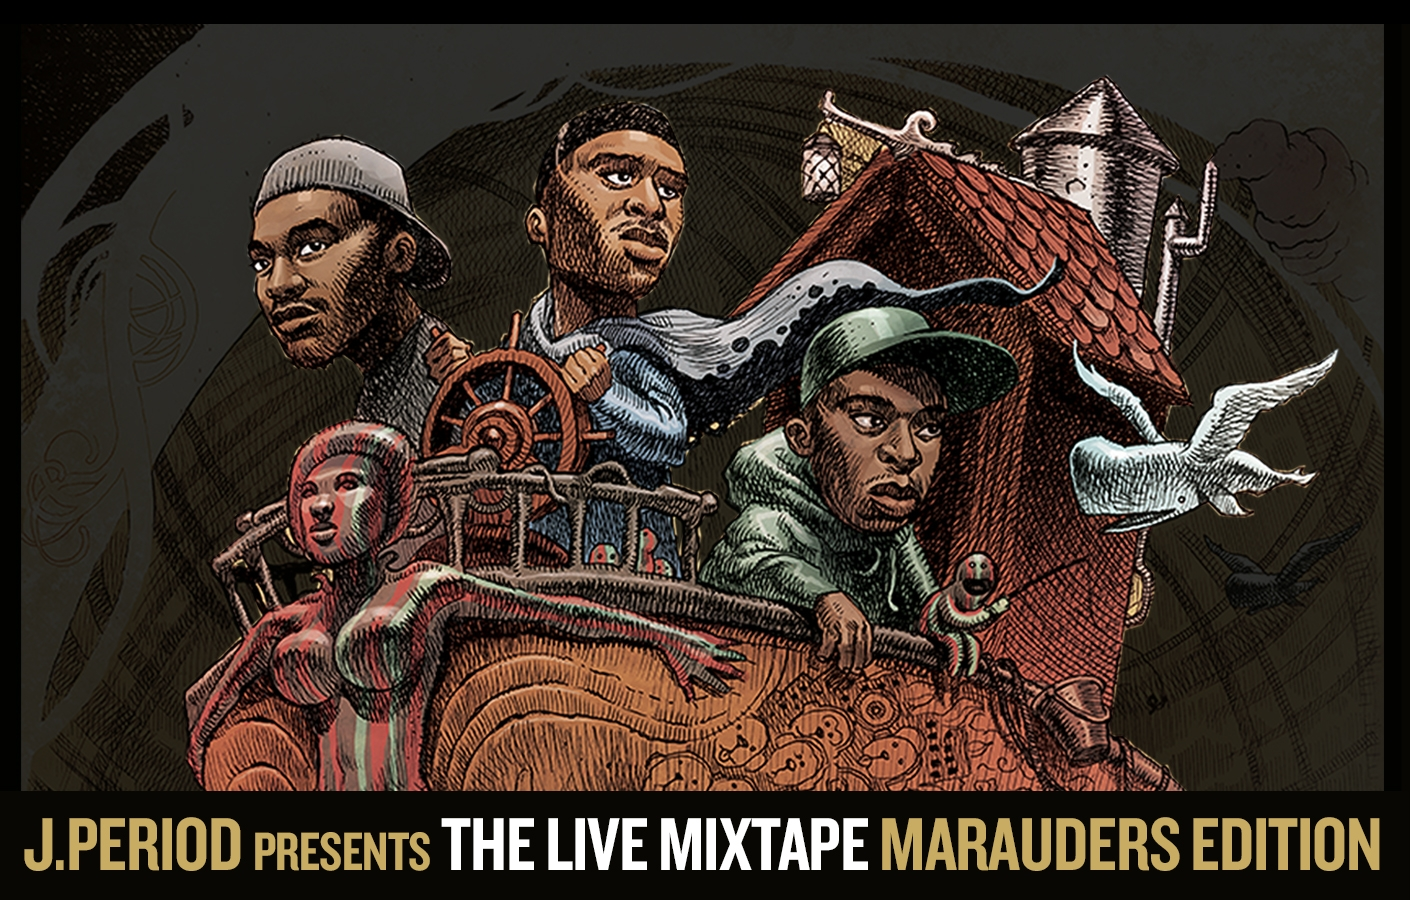 THE LIVE MIXTAPE: MARAUDERS EDITION